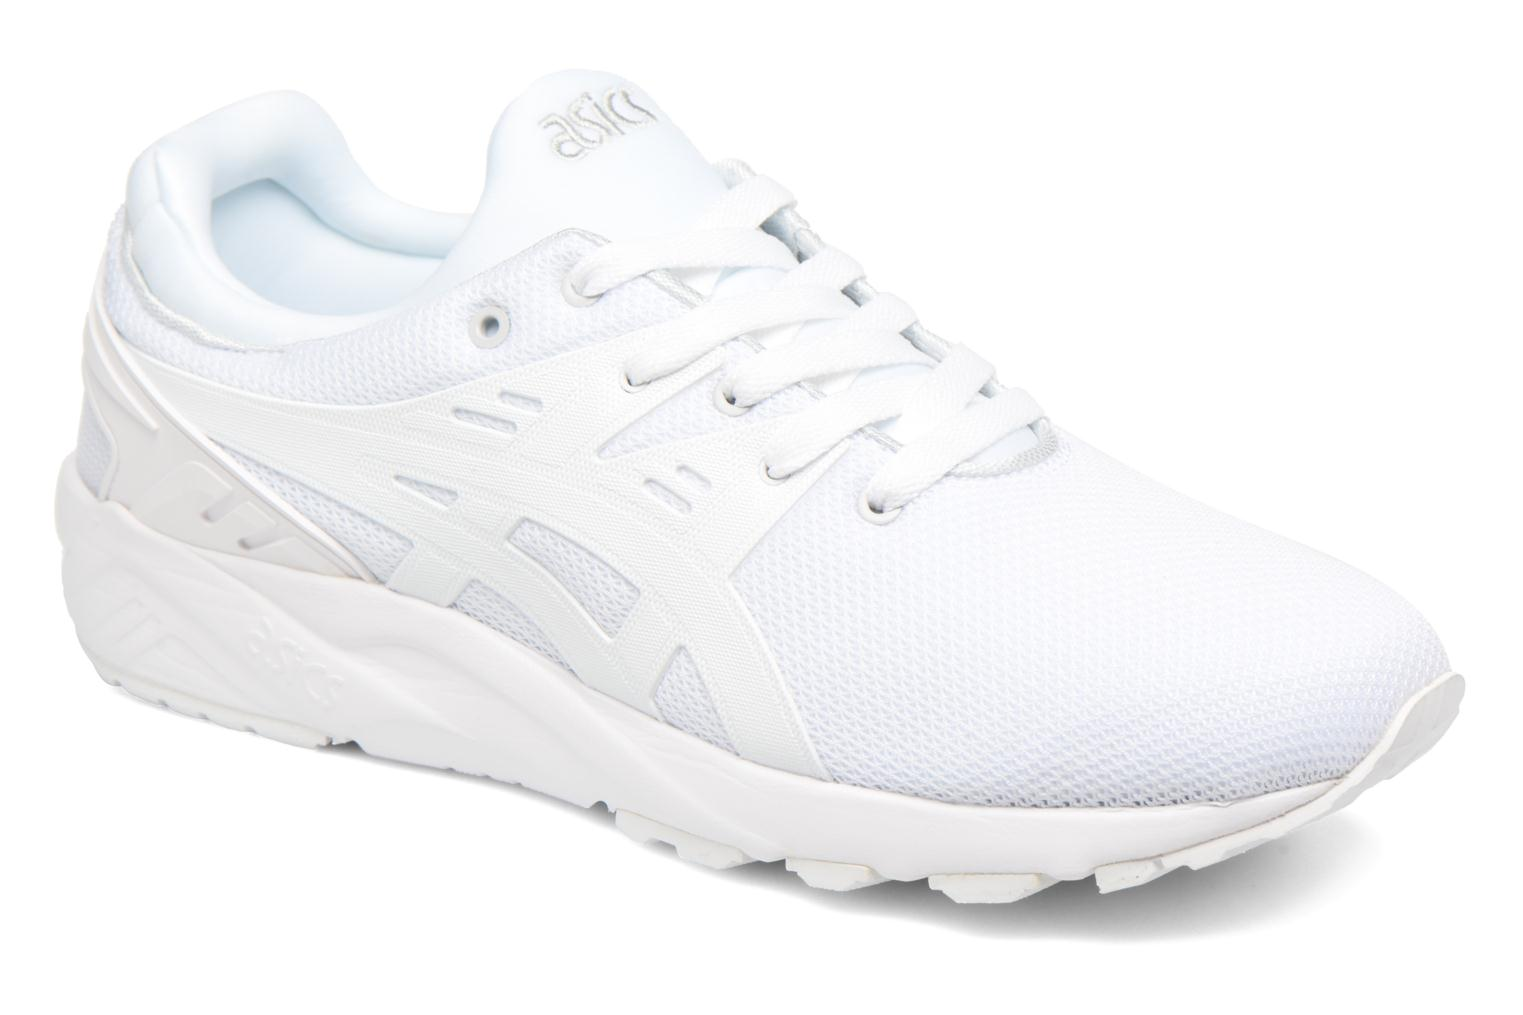 Gel-Kayano Trainer Evo White White